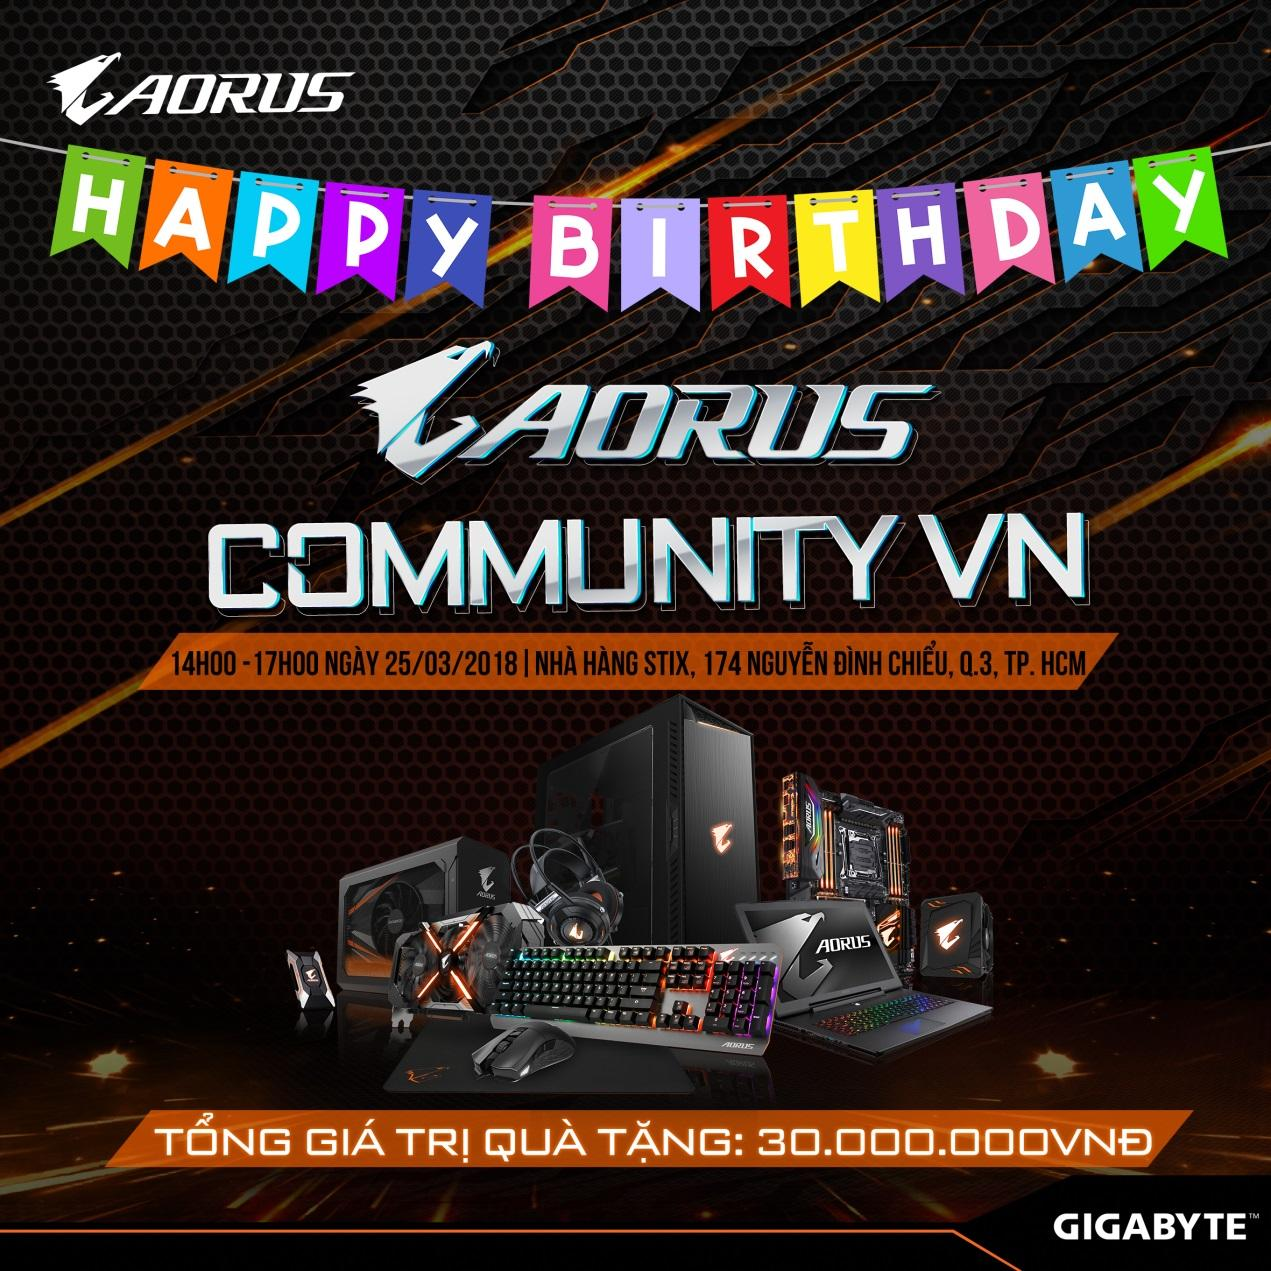 C:\Users\flora.doan\AppData\Local\Microsoft\Windows\Temporary Internet Files\Content.Word\AORUS-Brithday-poster-3.jpg